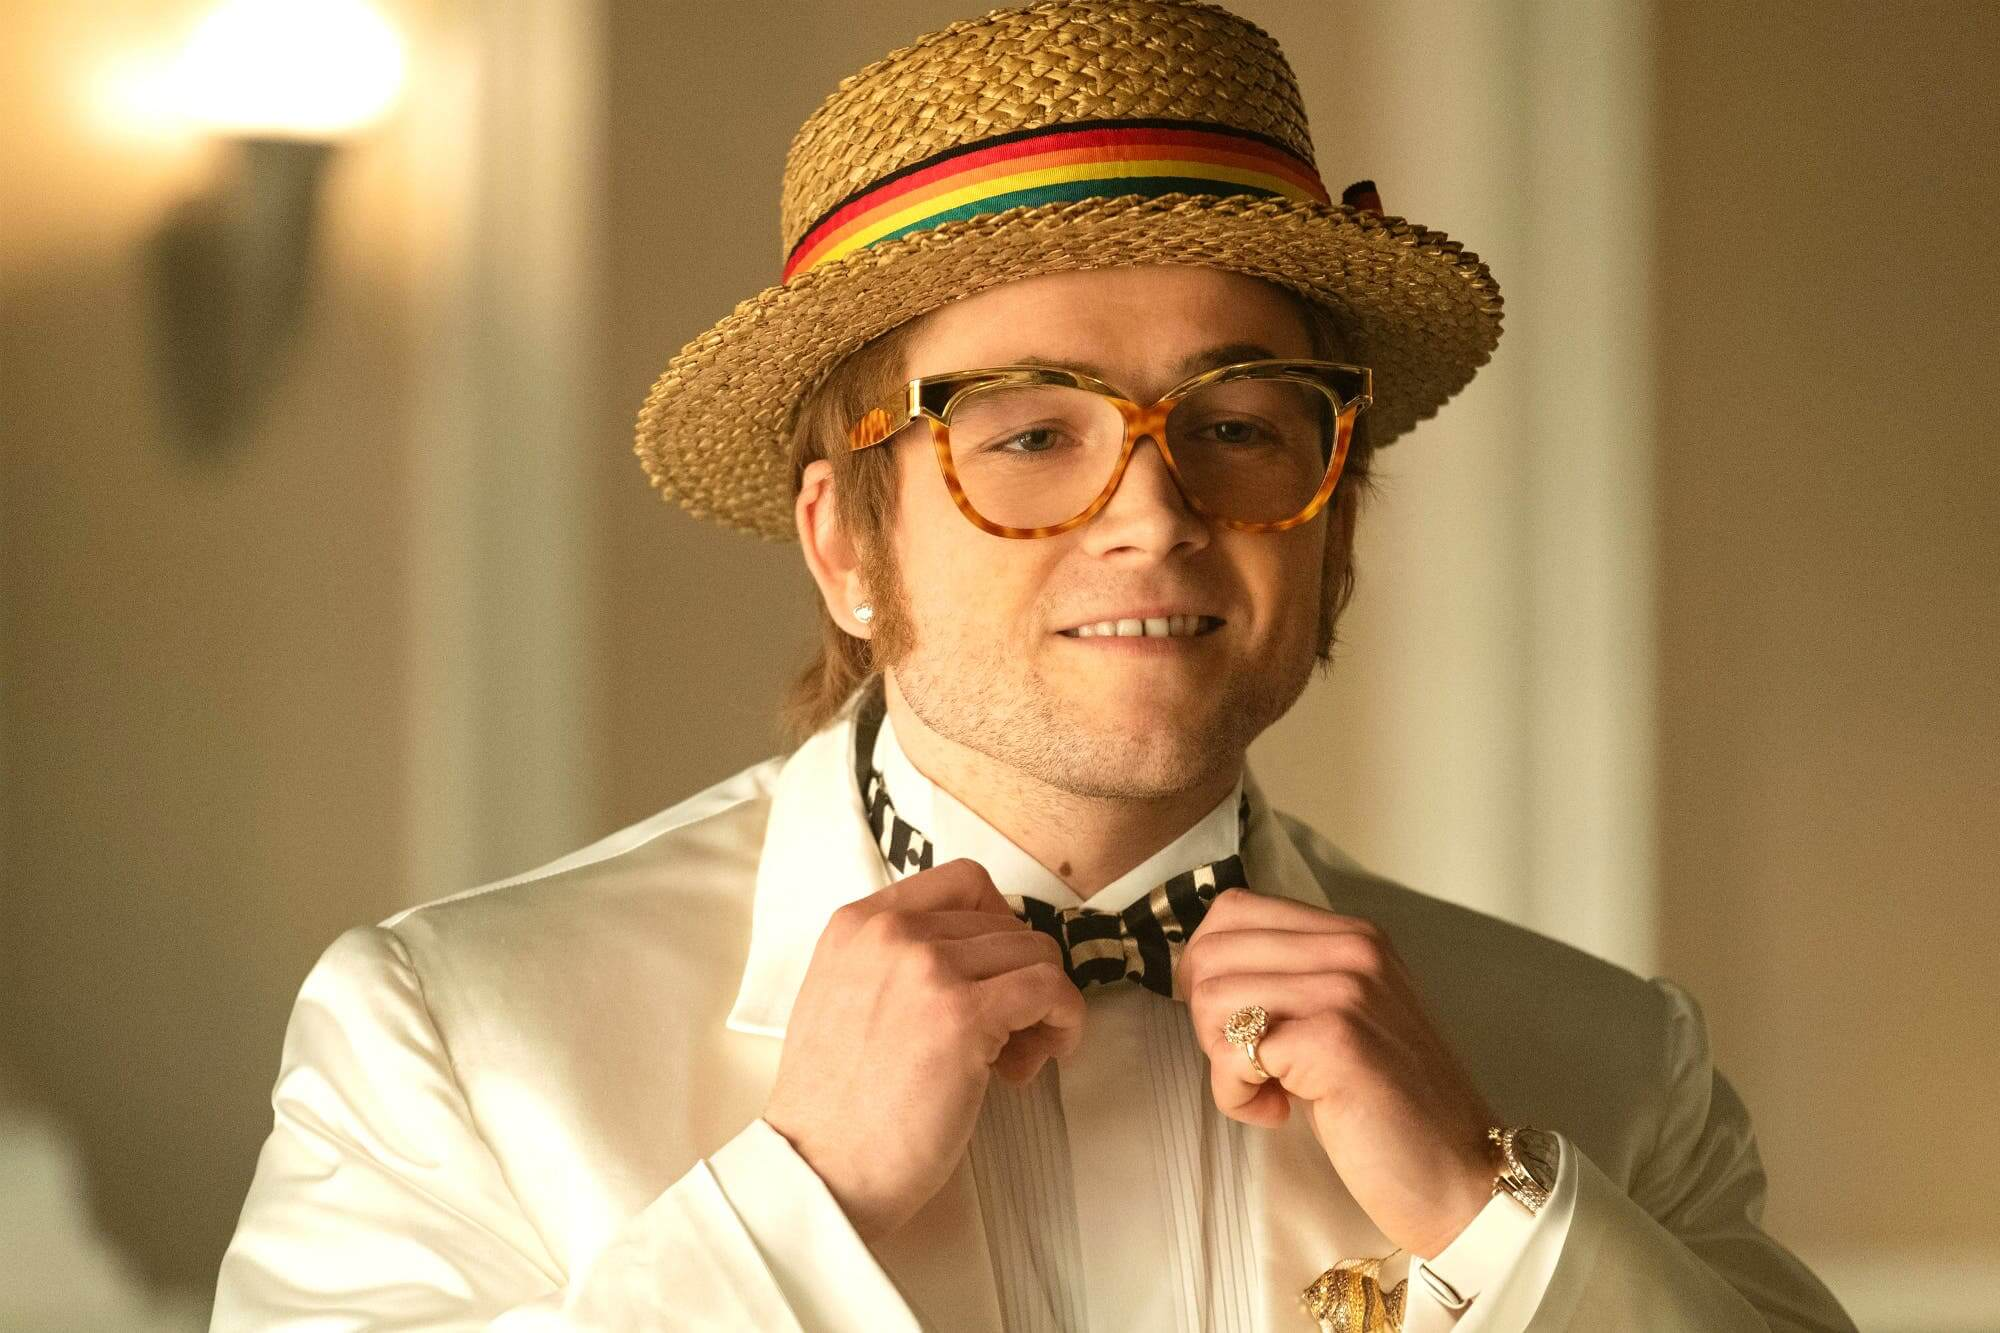 Rocketman: Ranking The 10 Best Songs From The Movie